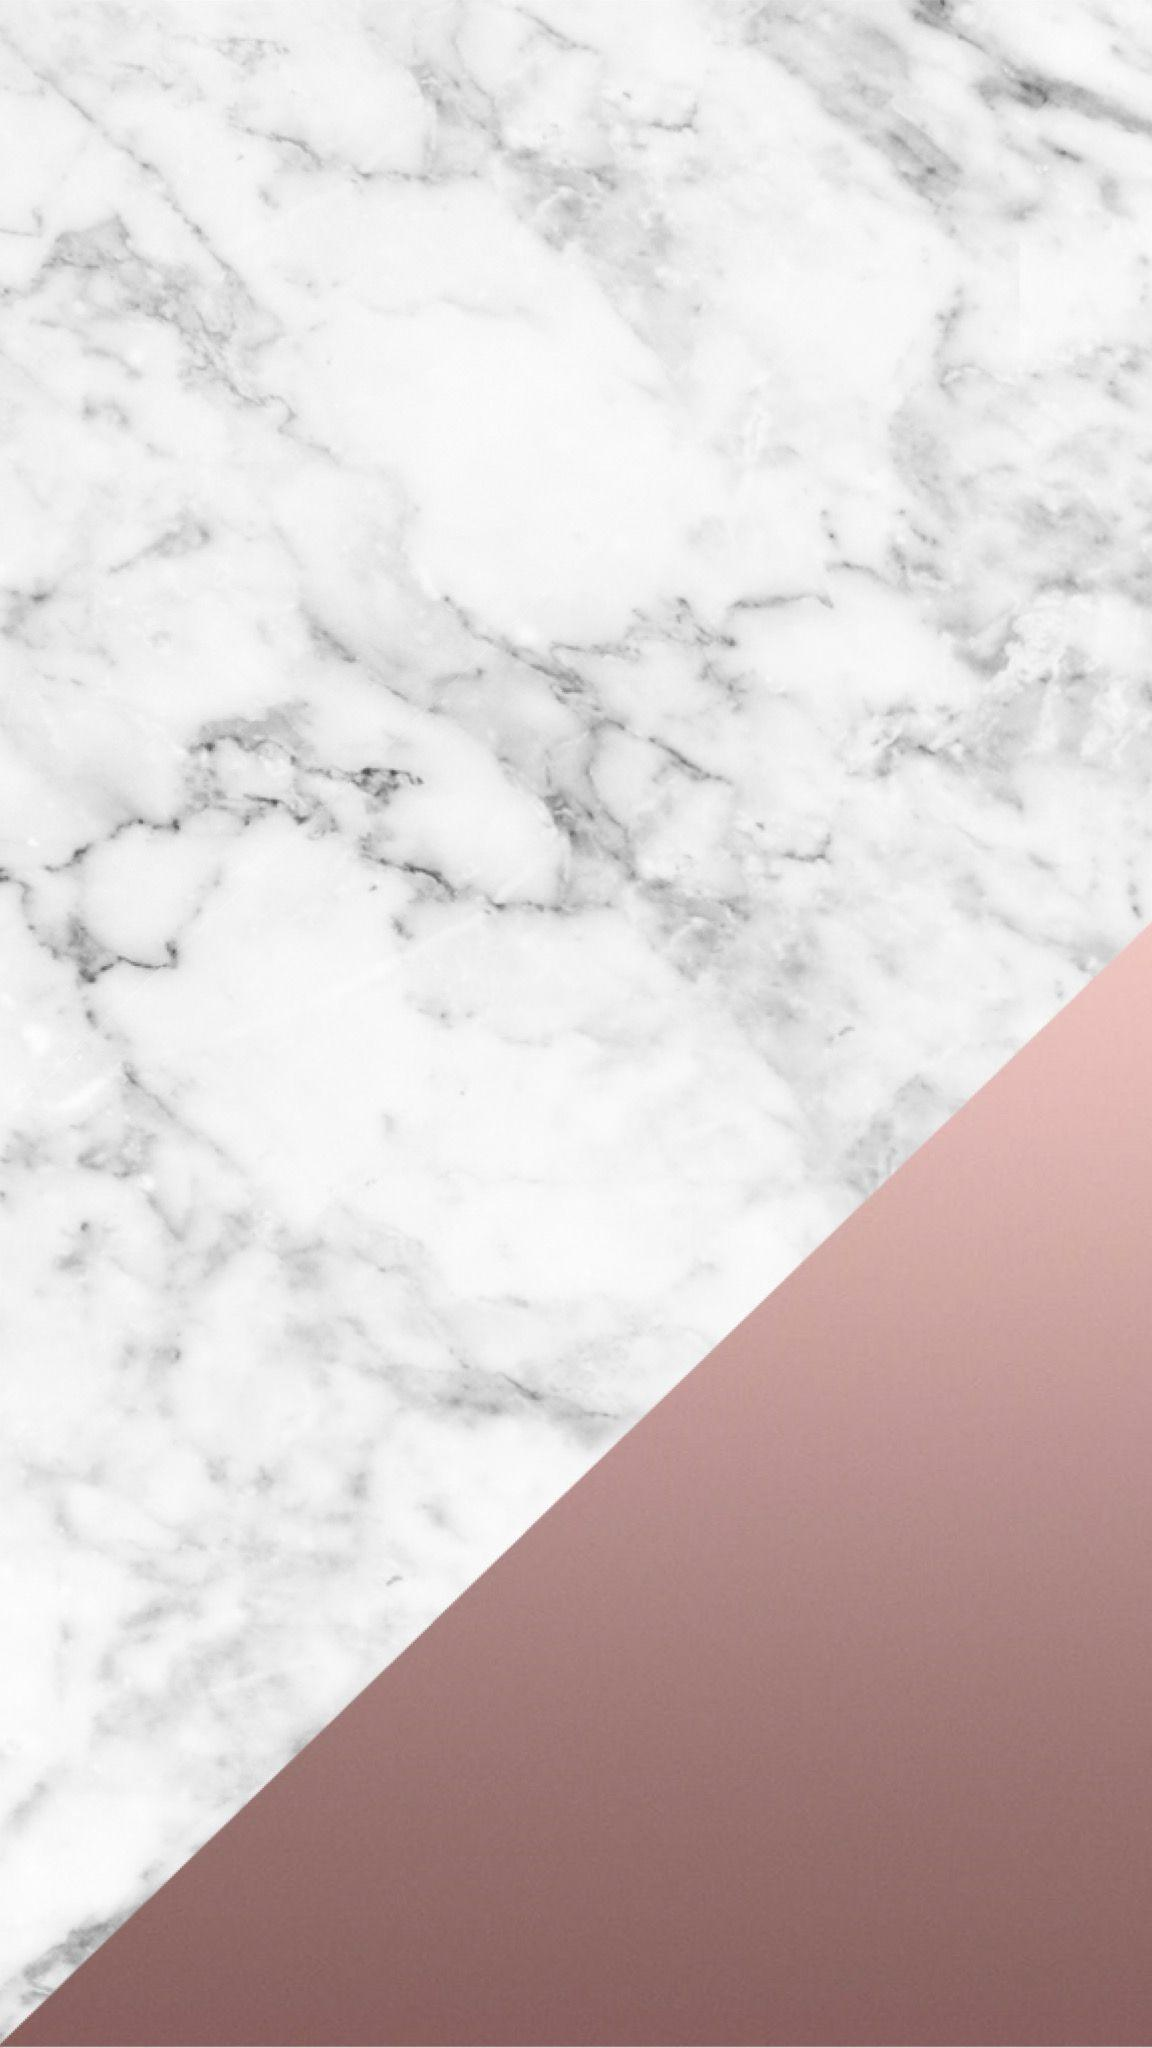 Rose gold marble wallpapers